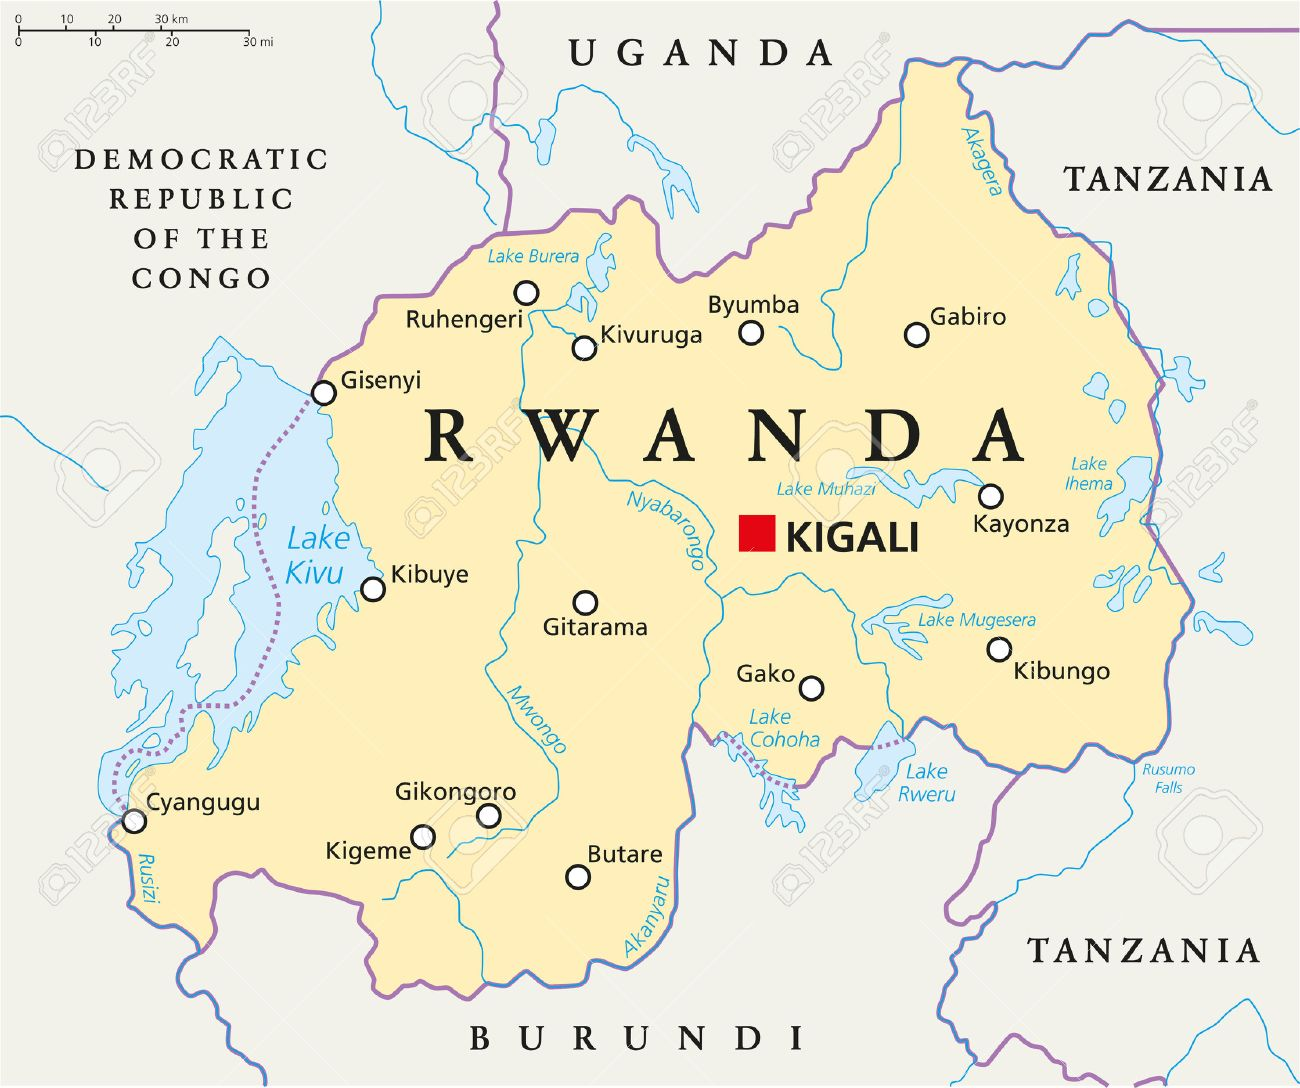 Rwanda Political Map With Capital Kigali, National Borders